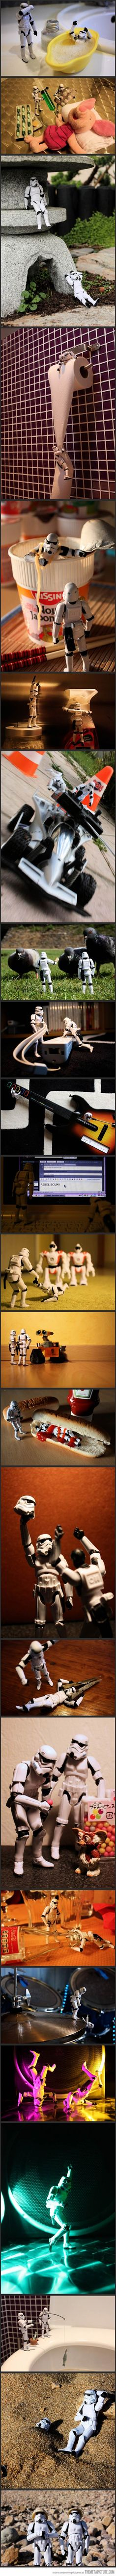 a day in the life of a storm trooper